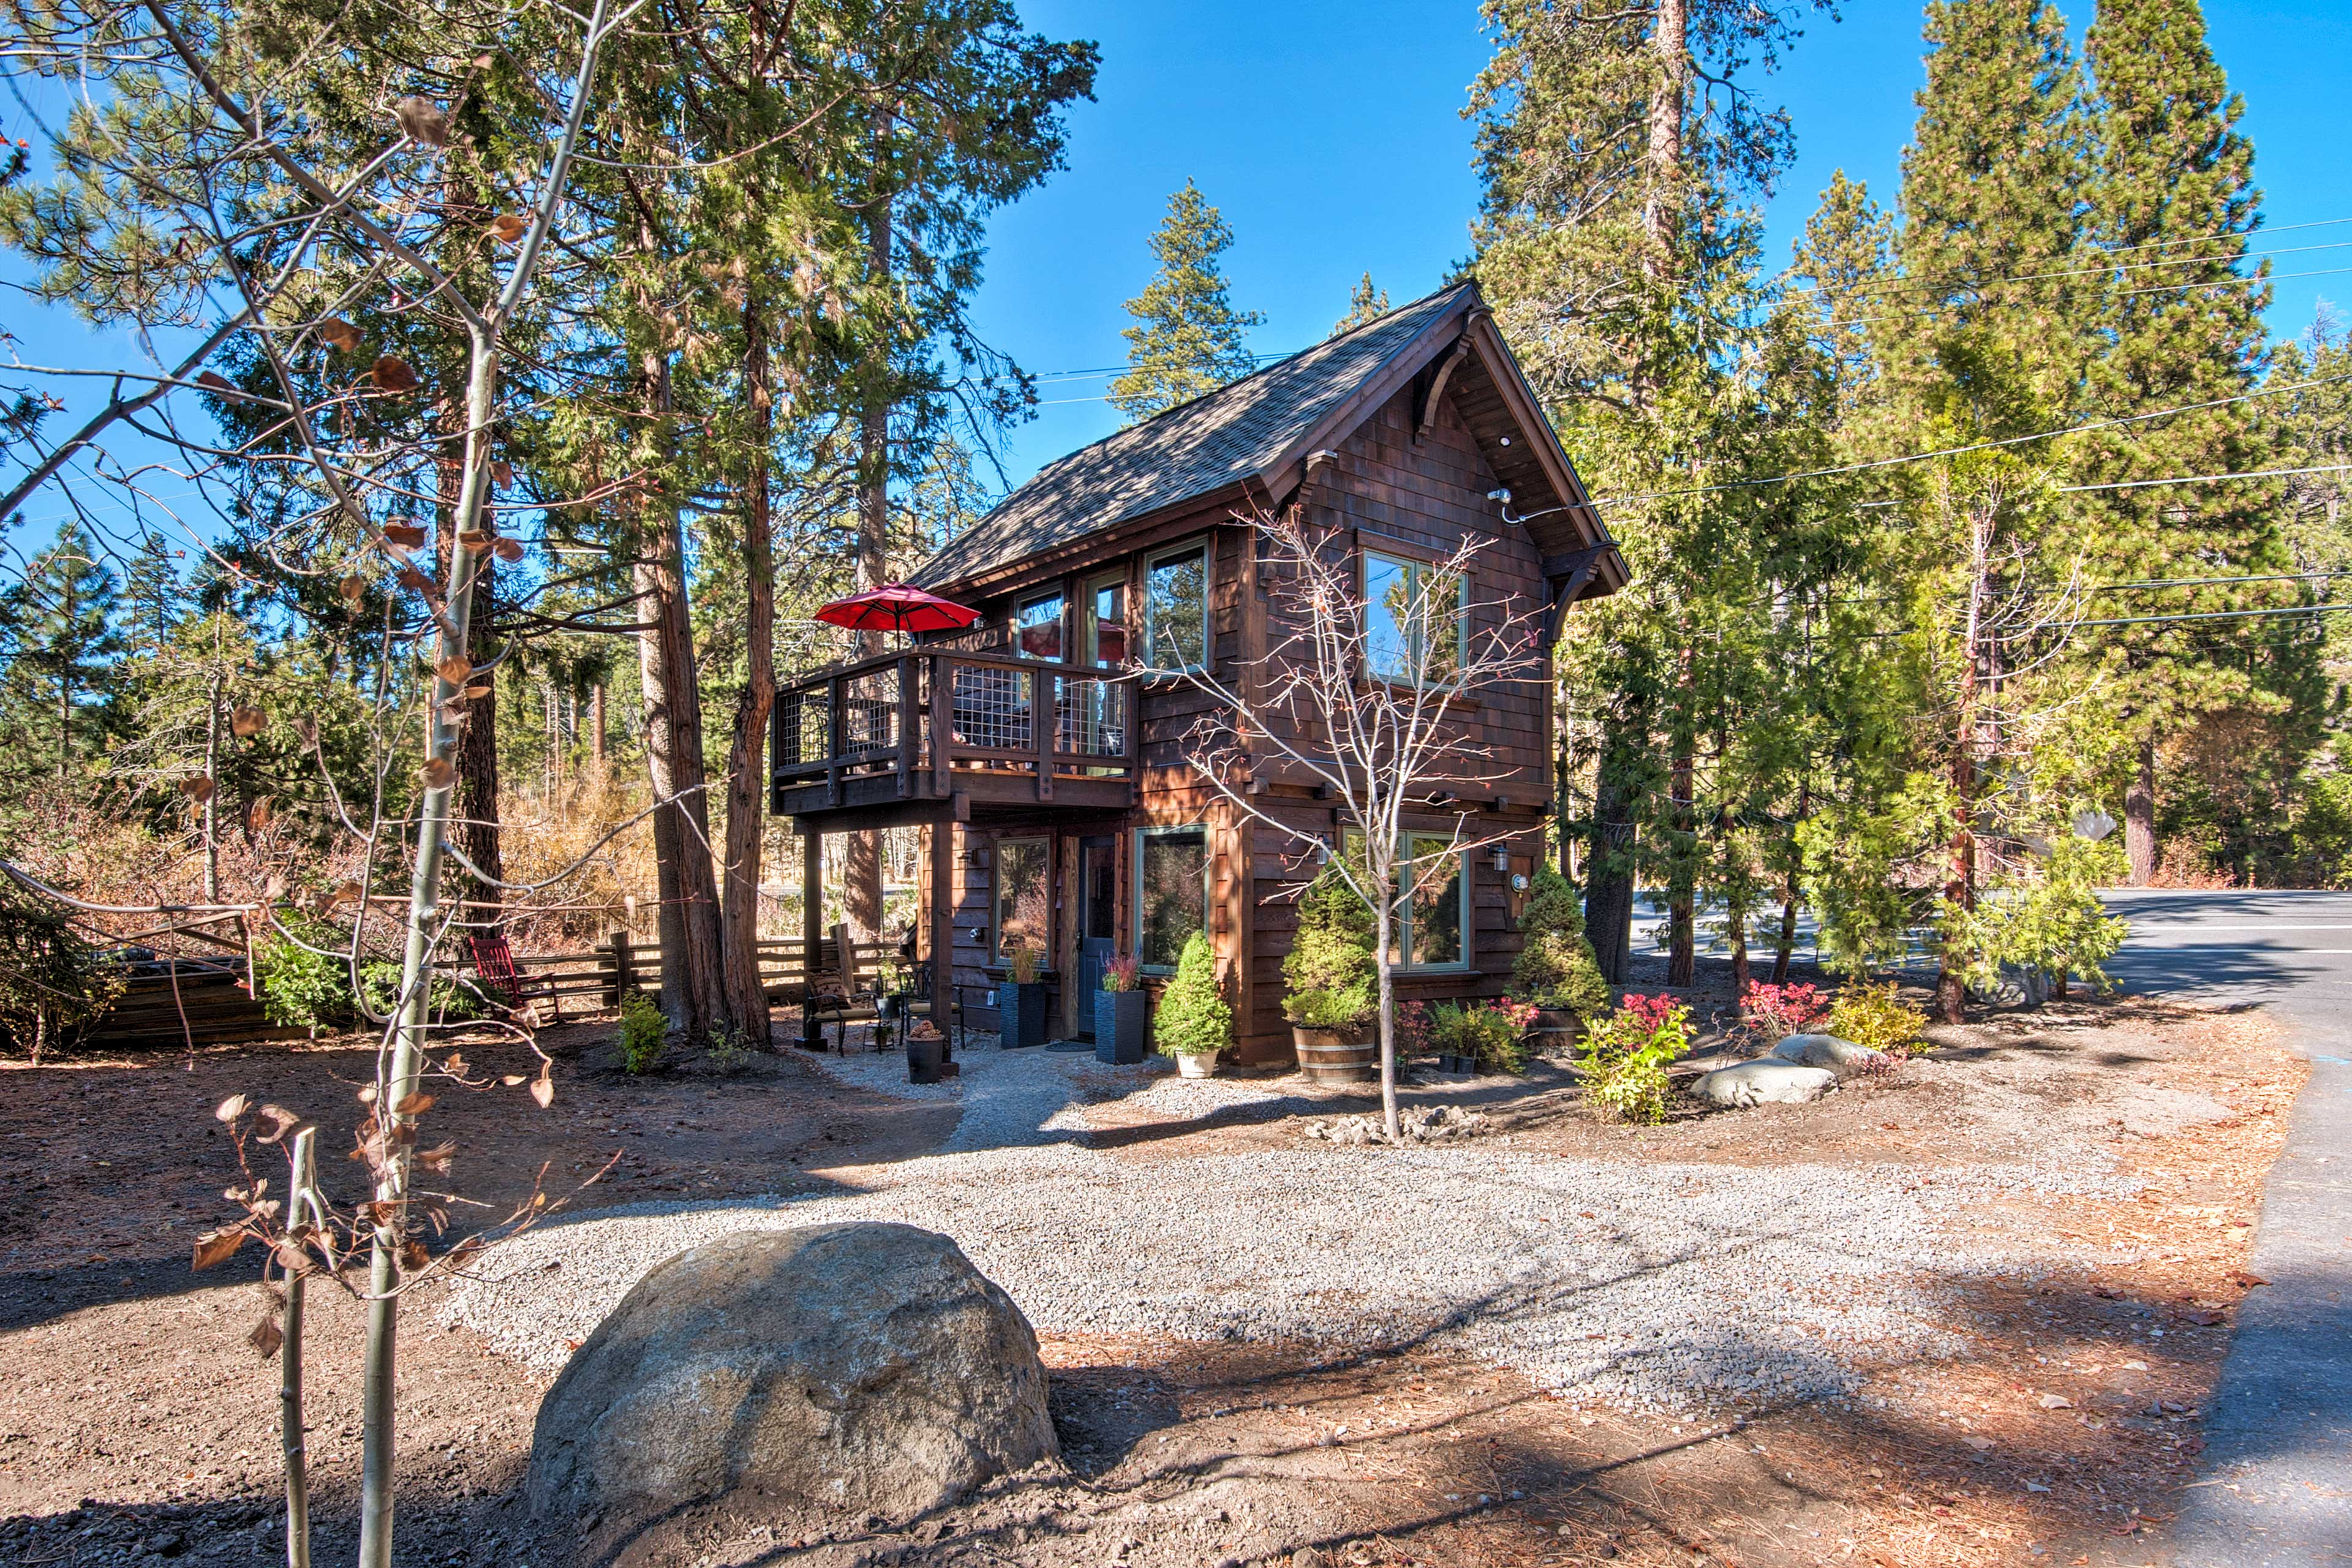 Enjoy an unforgettable escape to this Tahoe City cabin!